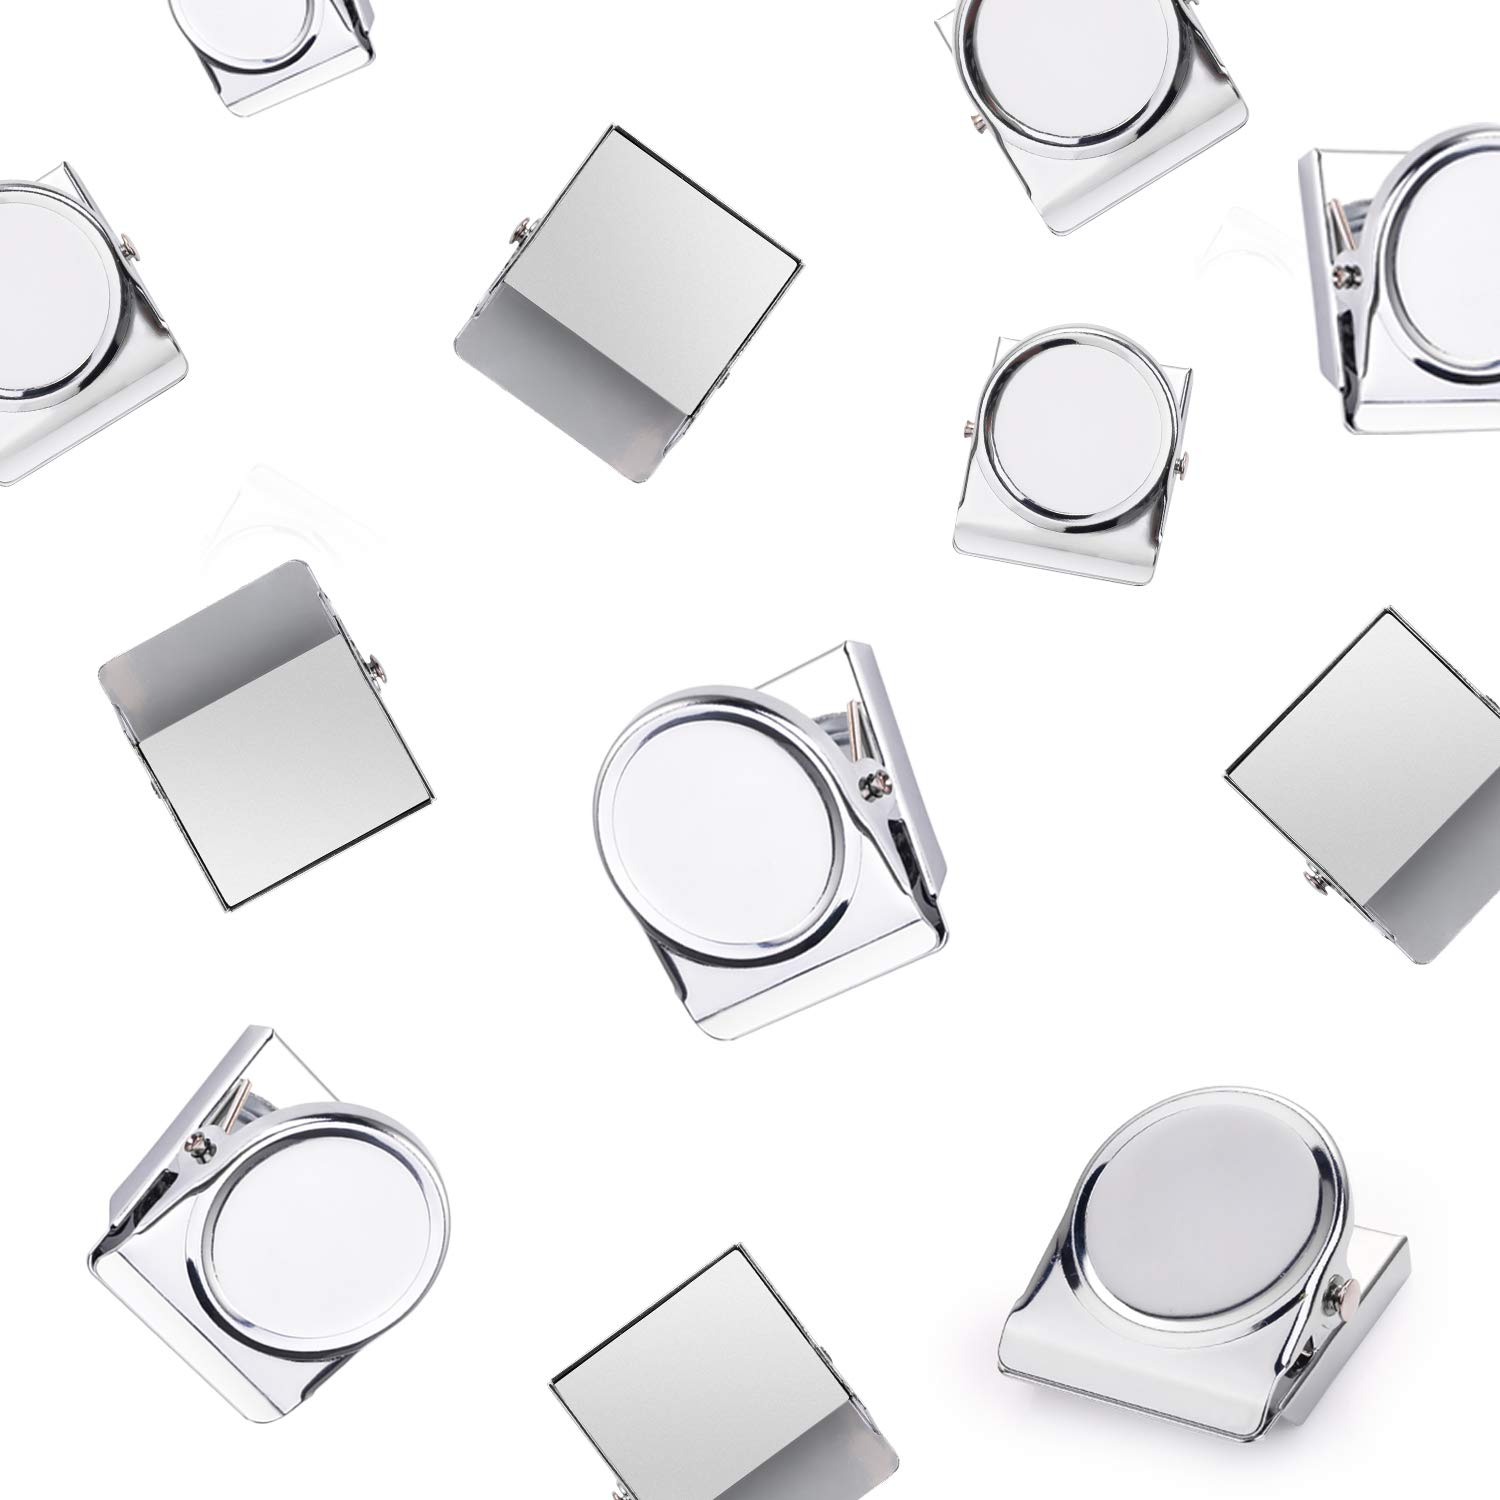 HOUSE AGAIN Scratch-Free Refrigerator Magnet Clips for Organizing, Decorating - Magnetic Memo Note Clip Metal Clip